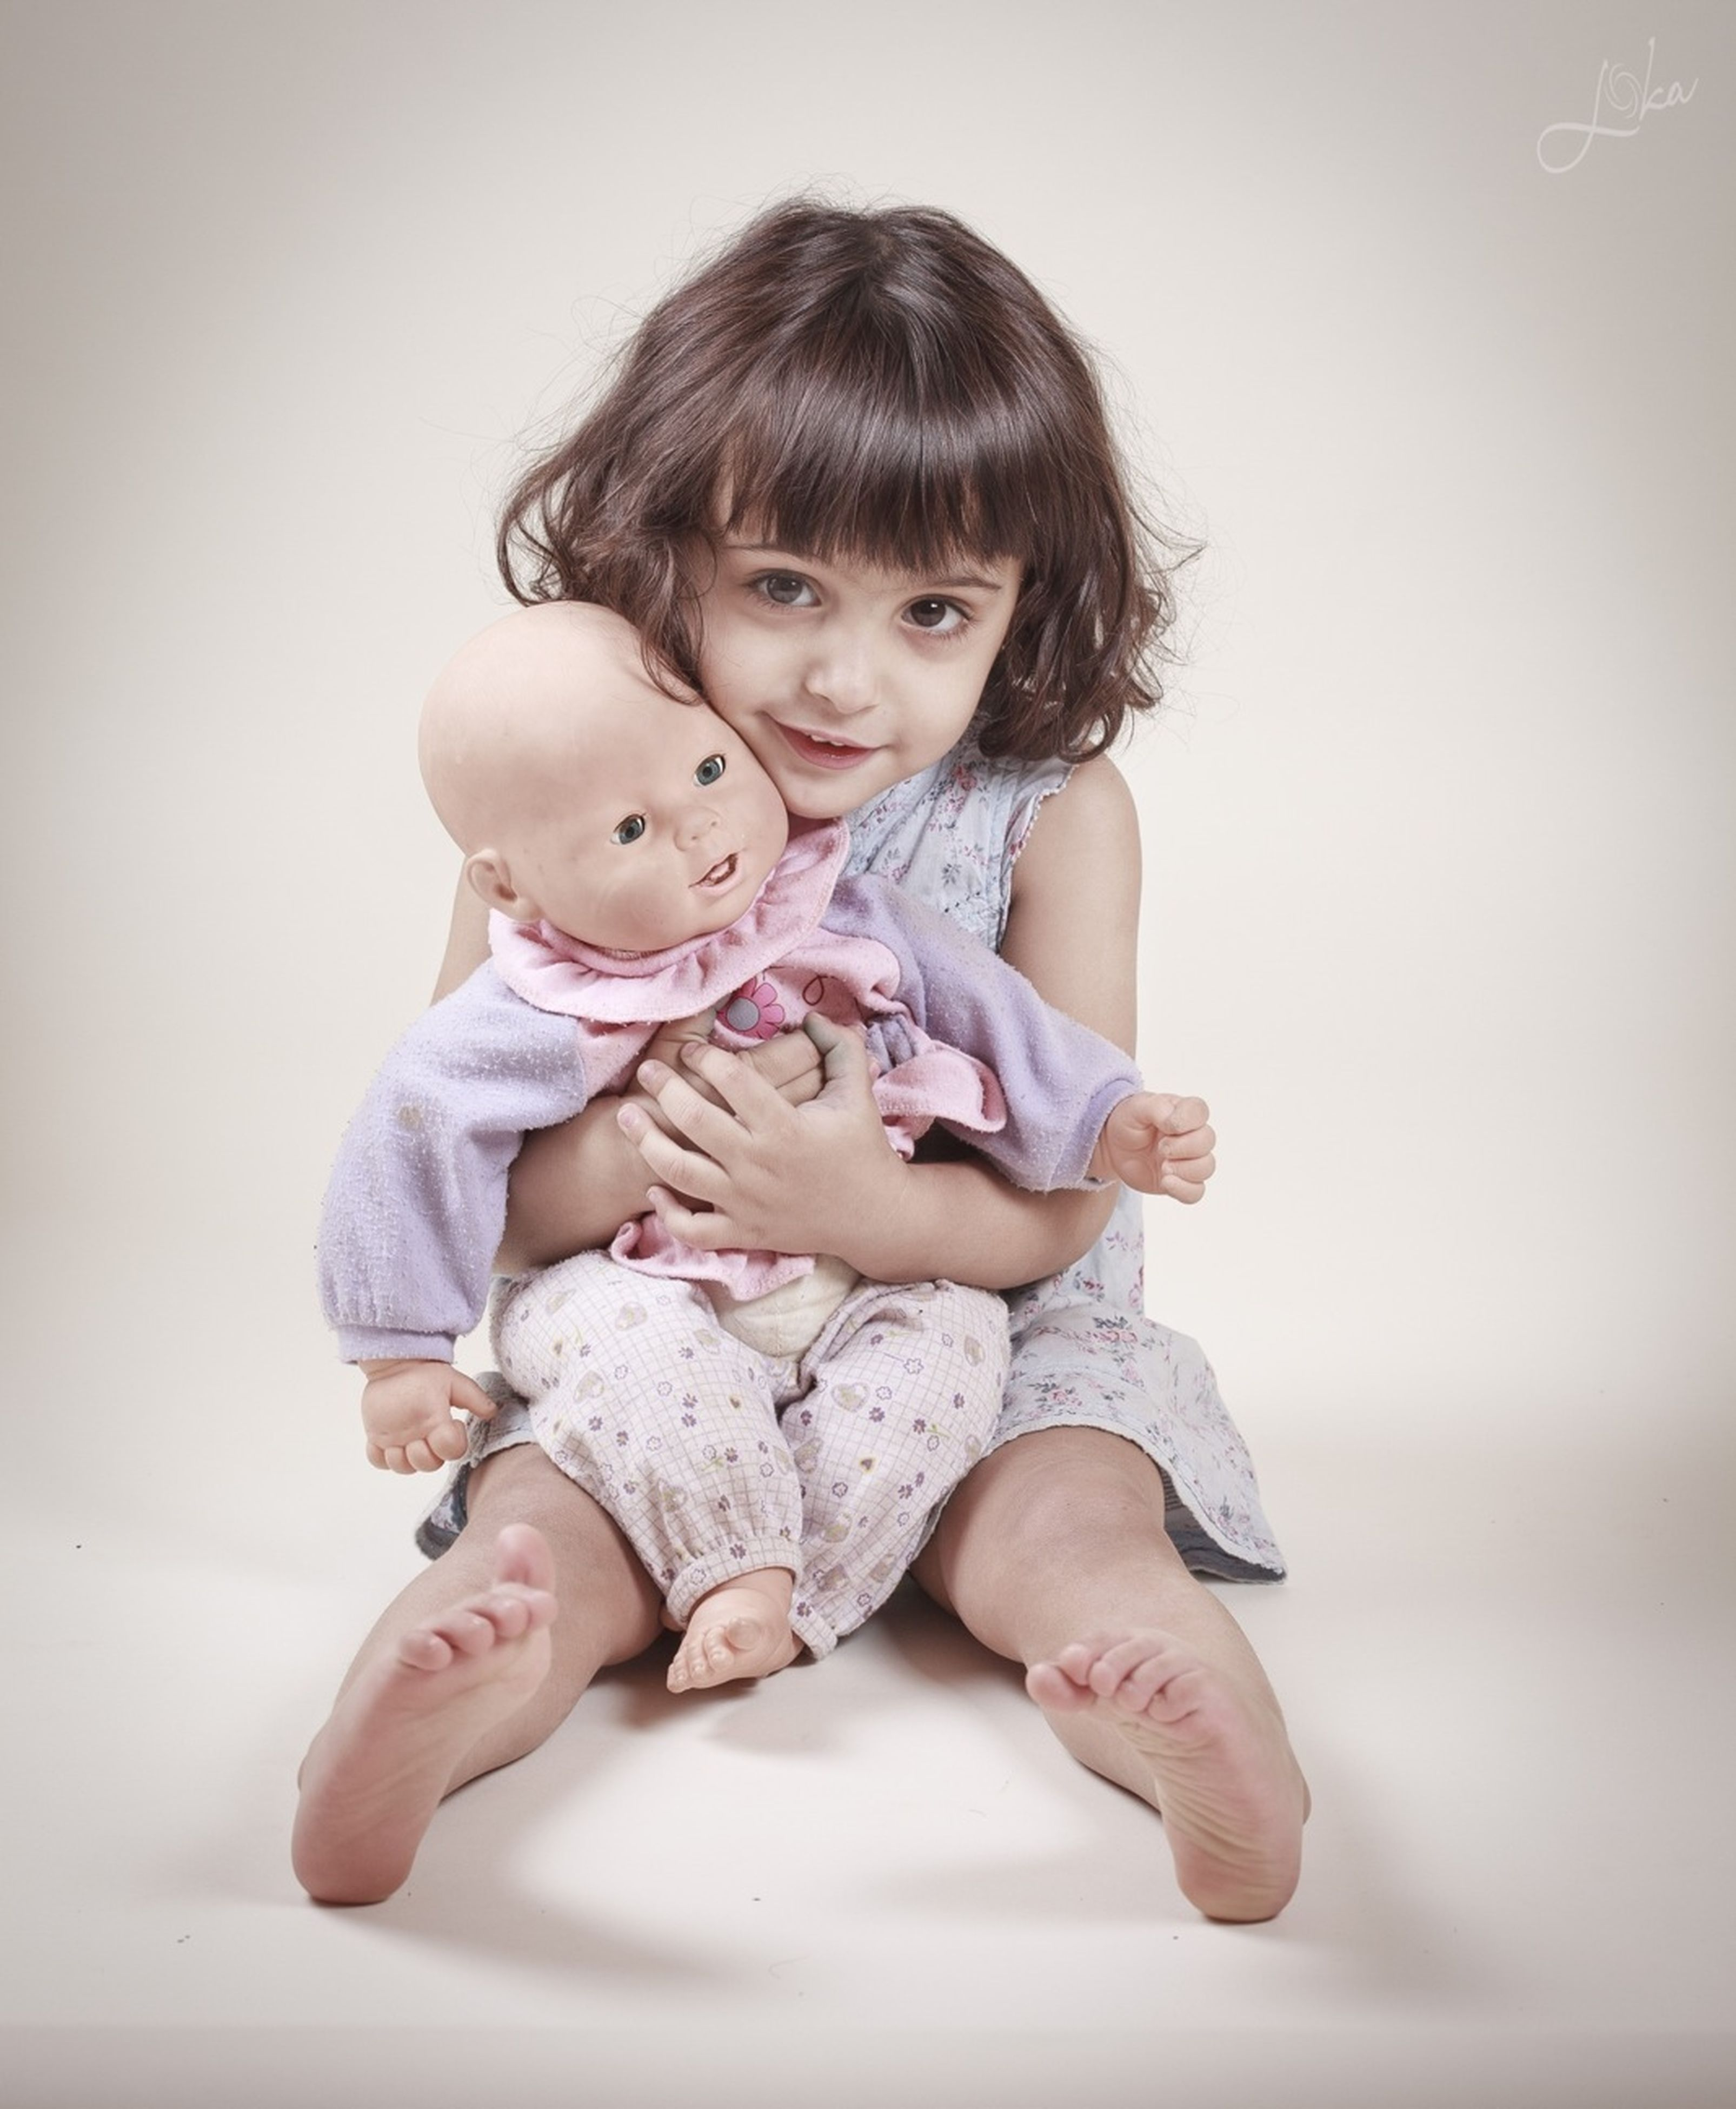 childhood, person, indoors, elementary age, cute, lifestyles, casual clothing, portrait, innocence, full length, front view, looking at camera, leisure activity, three quarter length, happiness, girls, togetherness, smiling